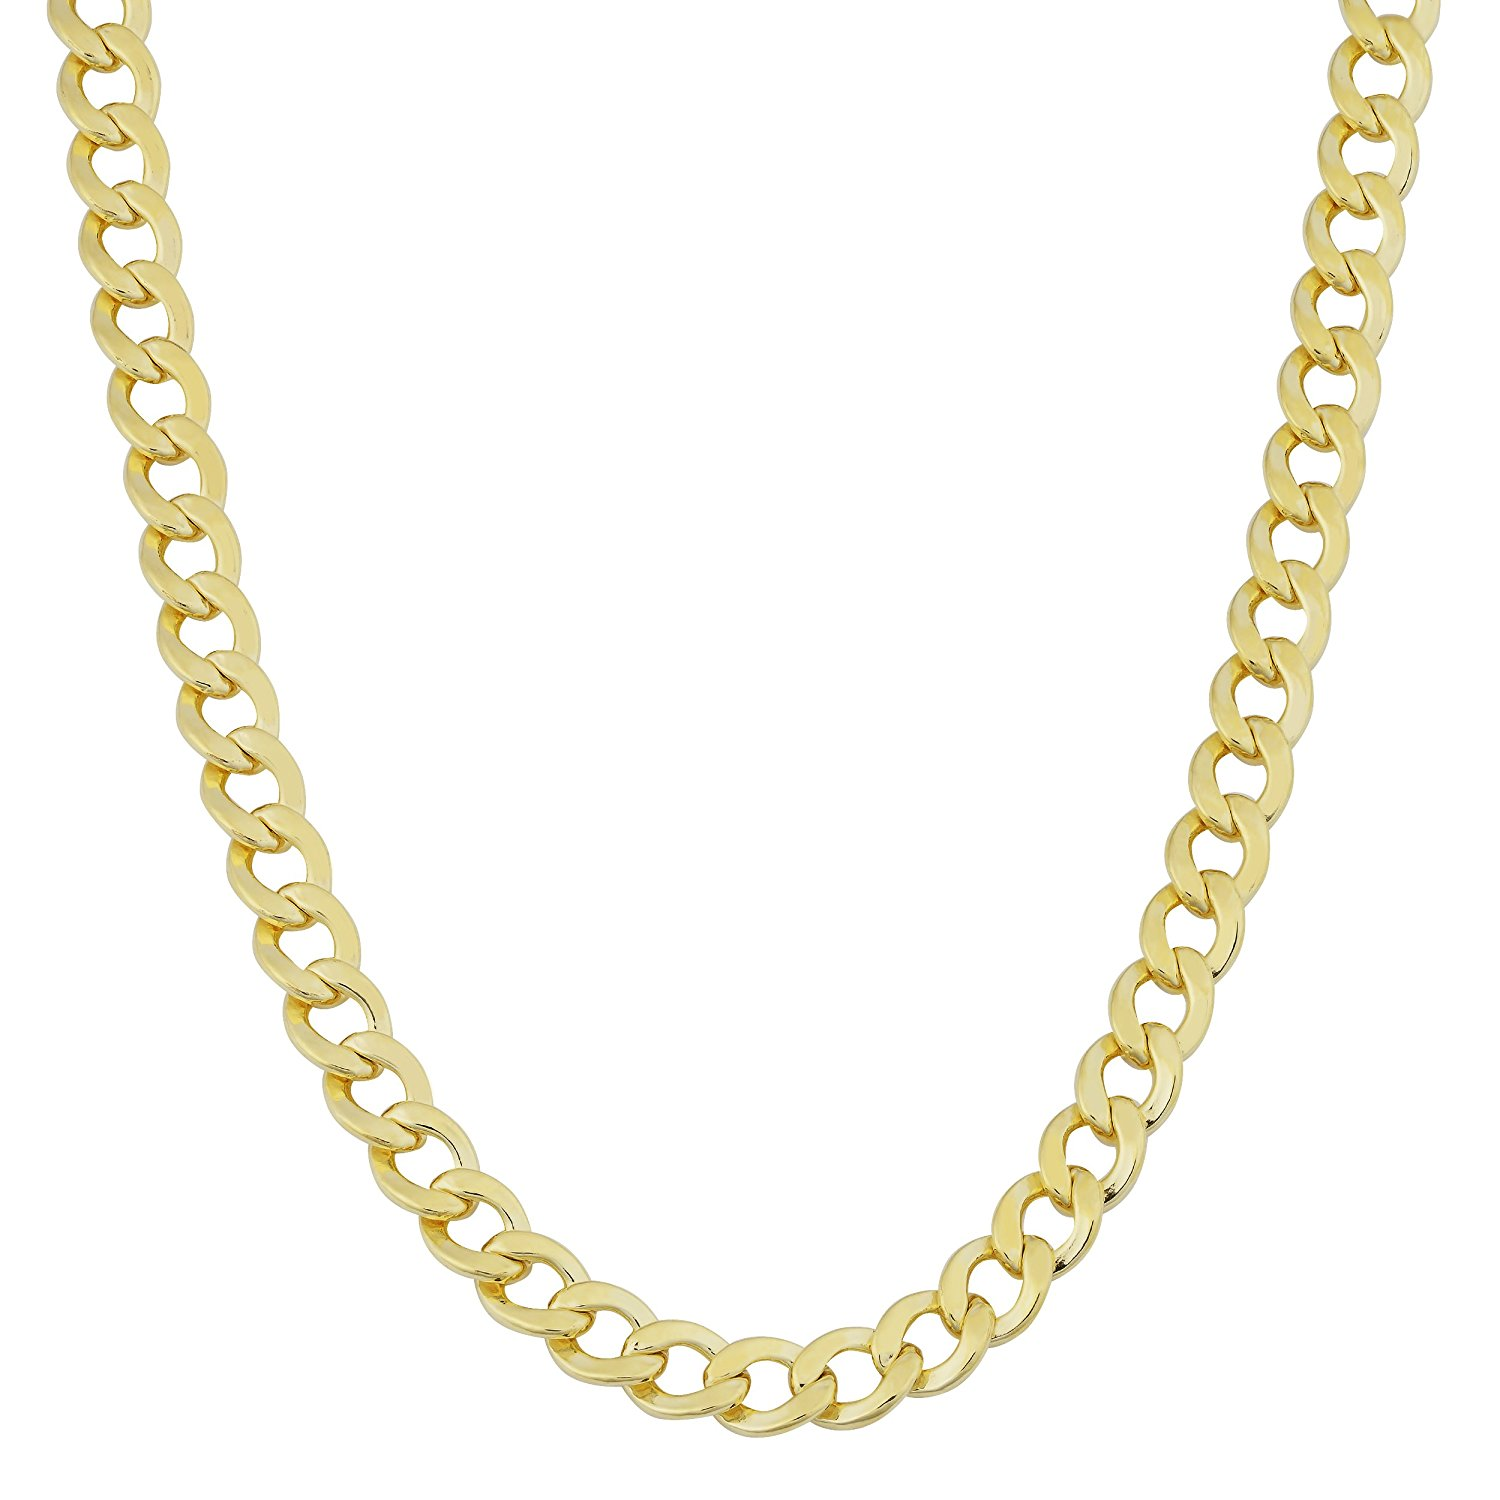 14k Gold Yellow White Finish 3.6mm Sparkle-Cut Comfort Pave Curb Chain With Lobster Clasp Necklace